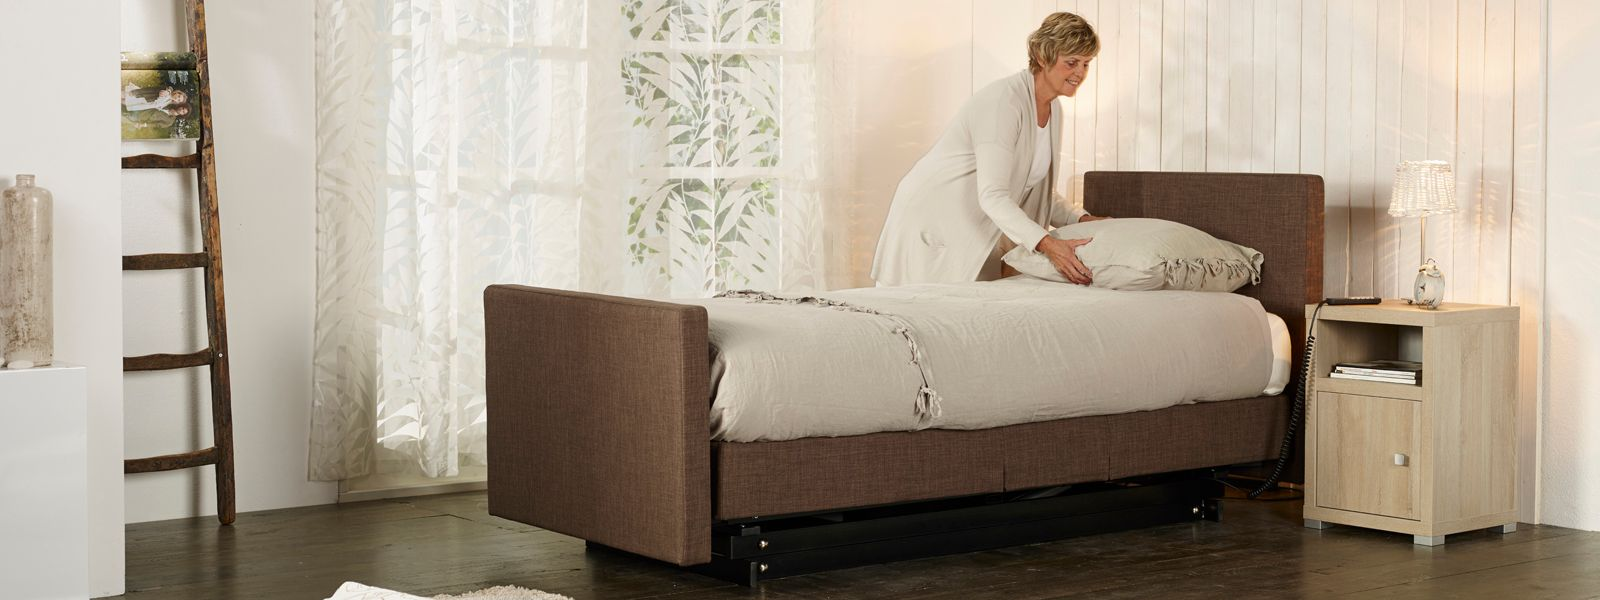 Sensostep boxspring standaard stand